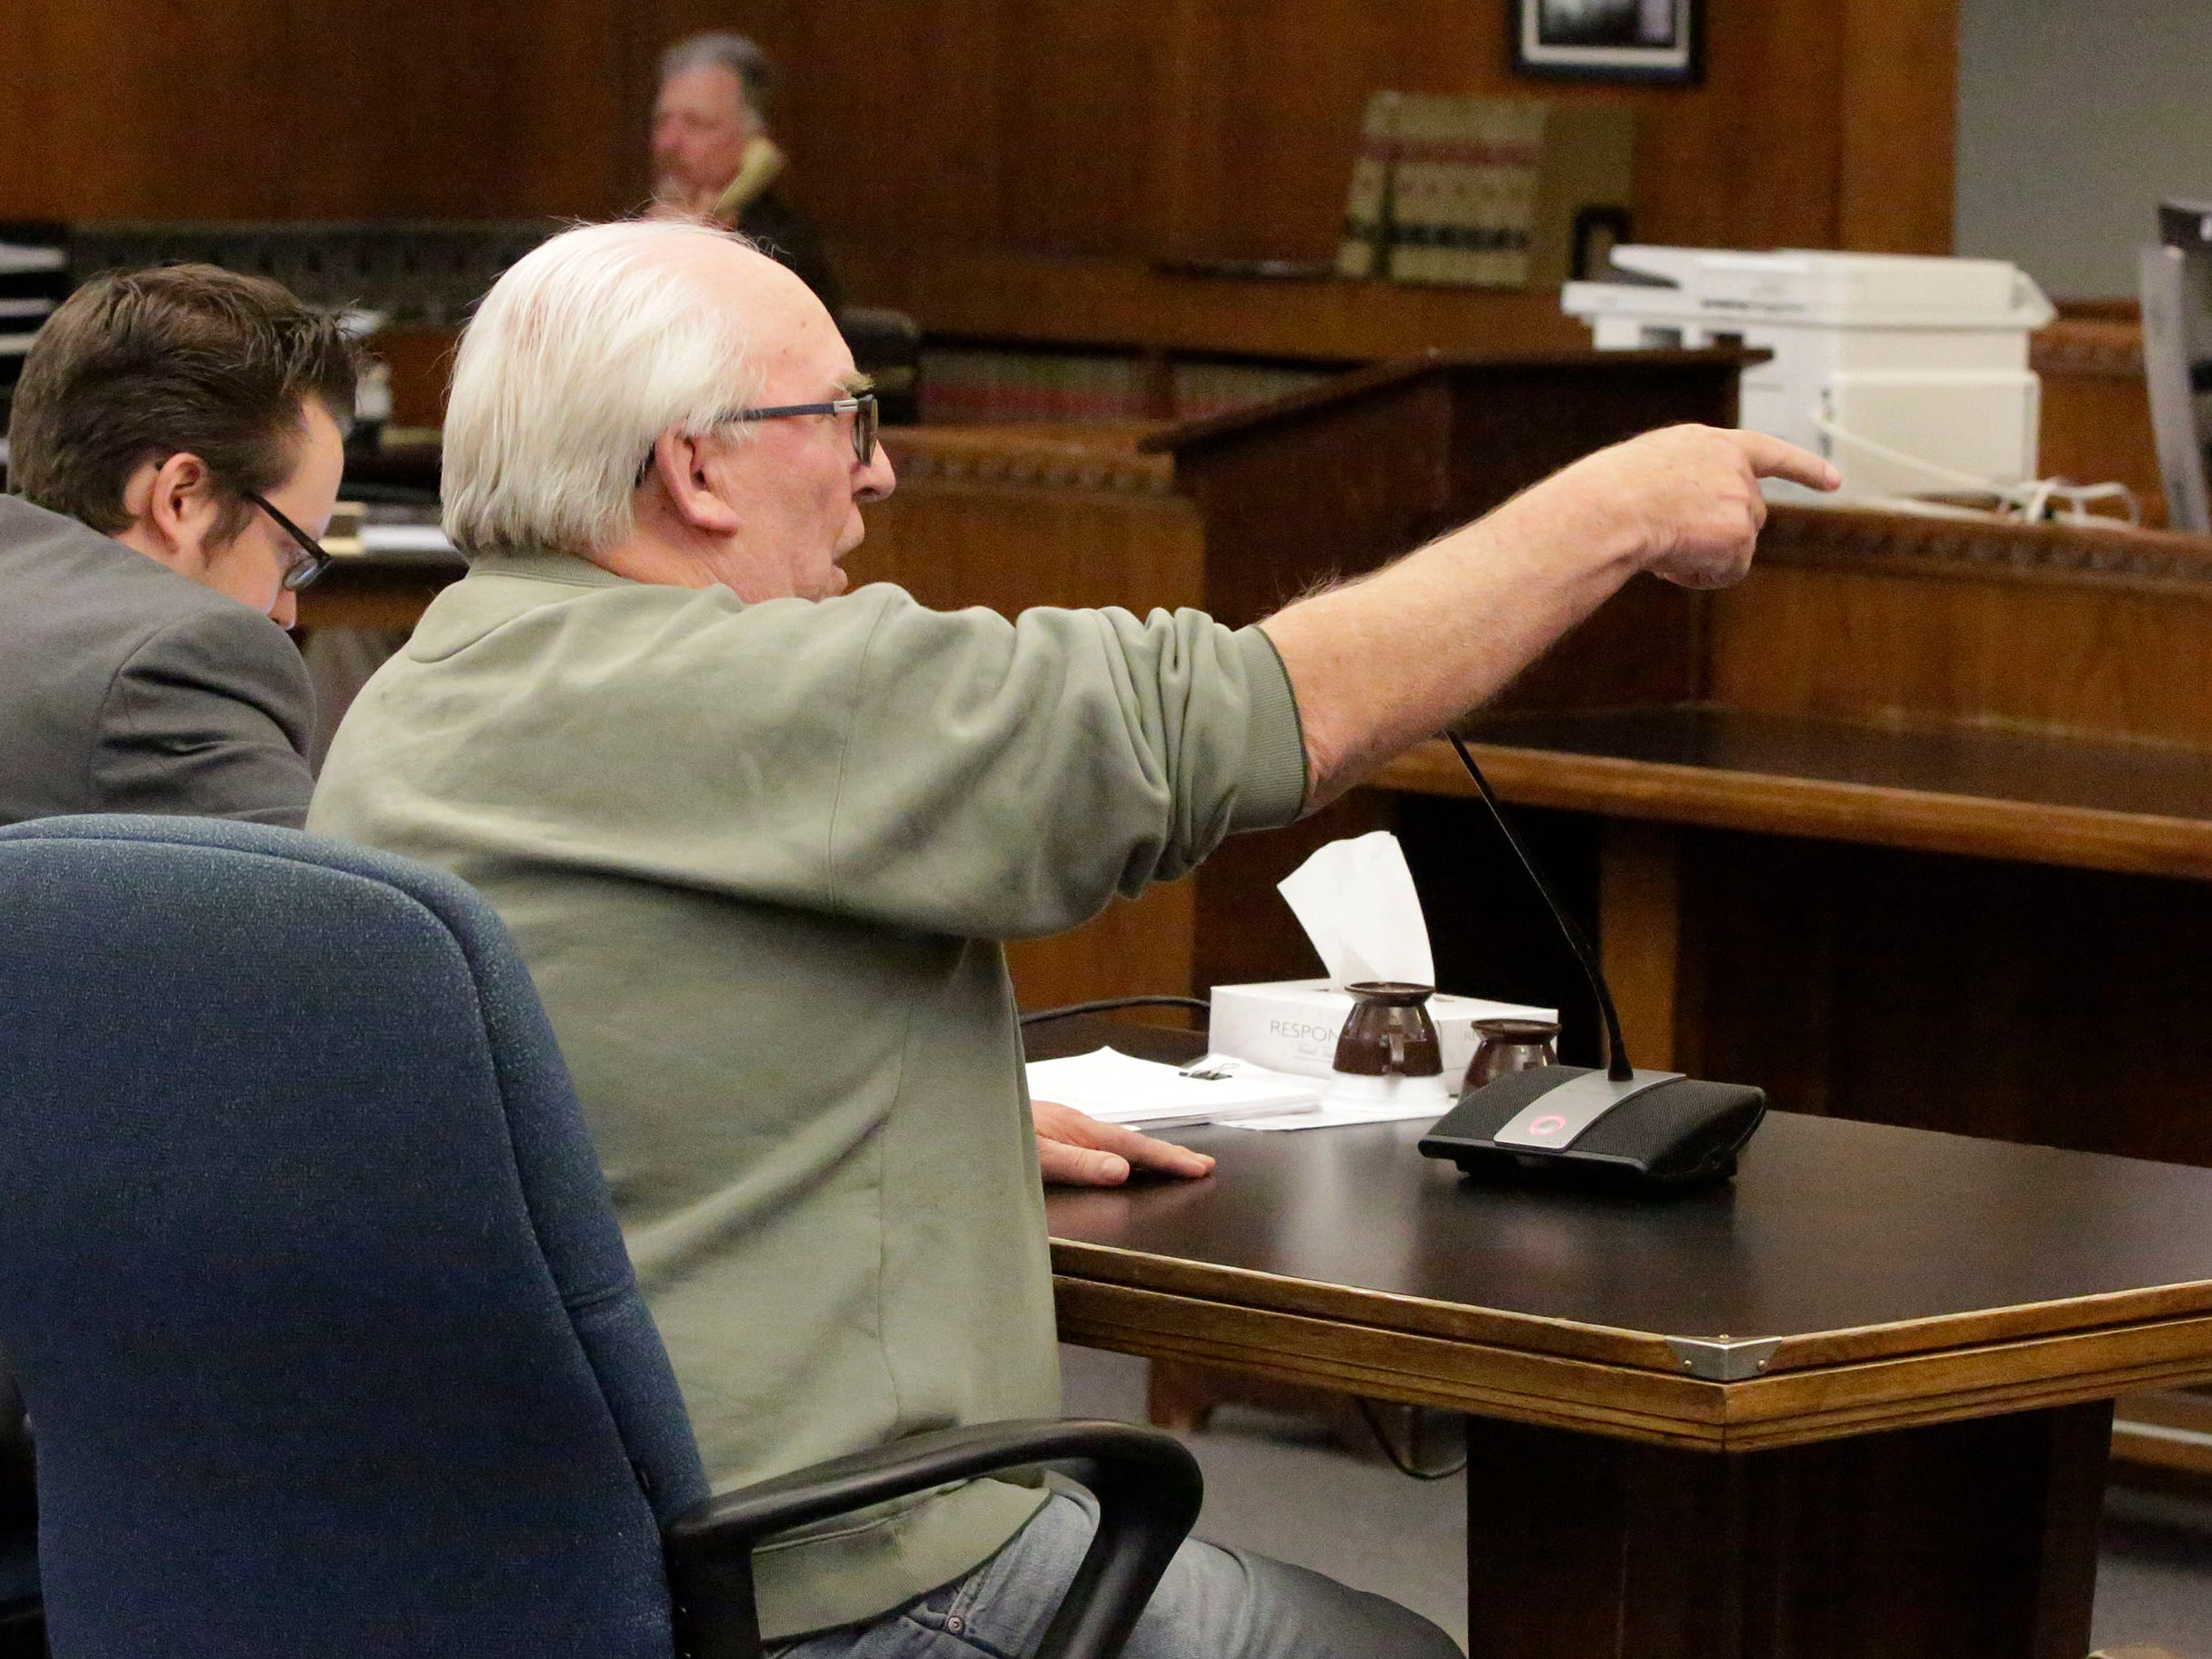 Theodore Tuchel points at Judge L. Edward Stengel while Tuchel gave his impact statement in Sheboygan County Court Branch 1, Friday, October 5, 2018, in Sheboygan, Wis.  Tuchel was ejected from the courtroom by Stengel.  Tuchel was speaking on behalf of his daughter Christy Rose Tuchel, who ran Kinship Companions kennel where dead dogs were discovered in an unplugged freezer.